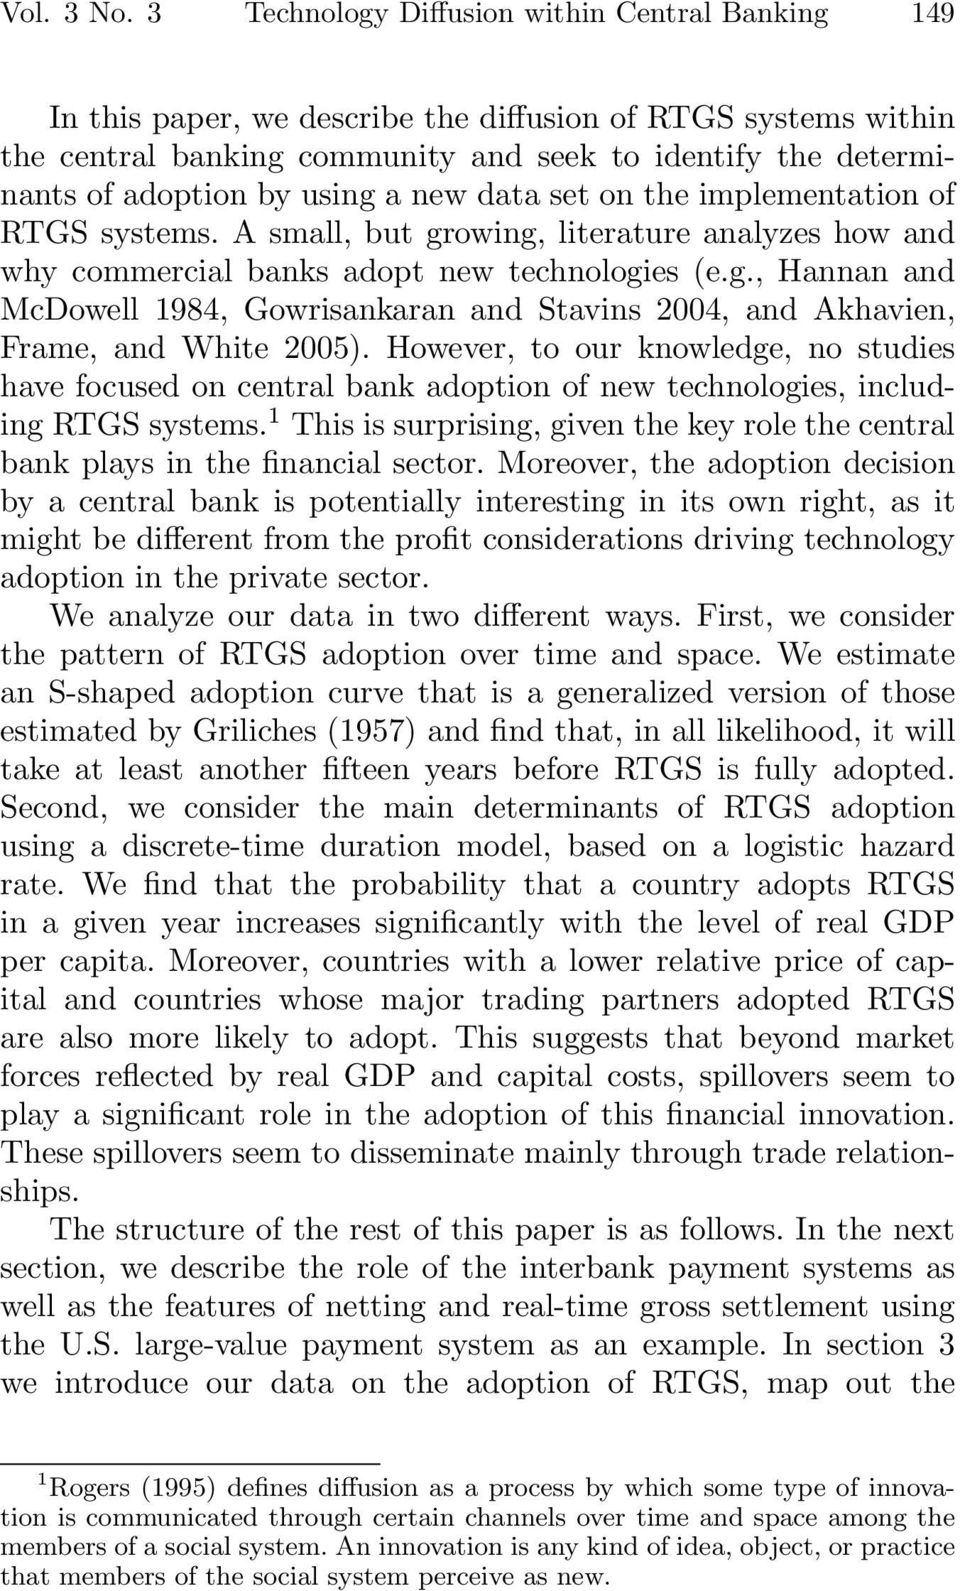 using a new data set on the implementation of RTGS systems. A small, but growing, literature analyzes how and why commercial banks adopt new technologies (e.g., Hannan and McDowell 1984, Gowrisankaran and Stavins 2004, and Akhavien, Frame, and White 2005).